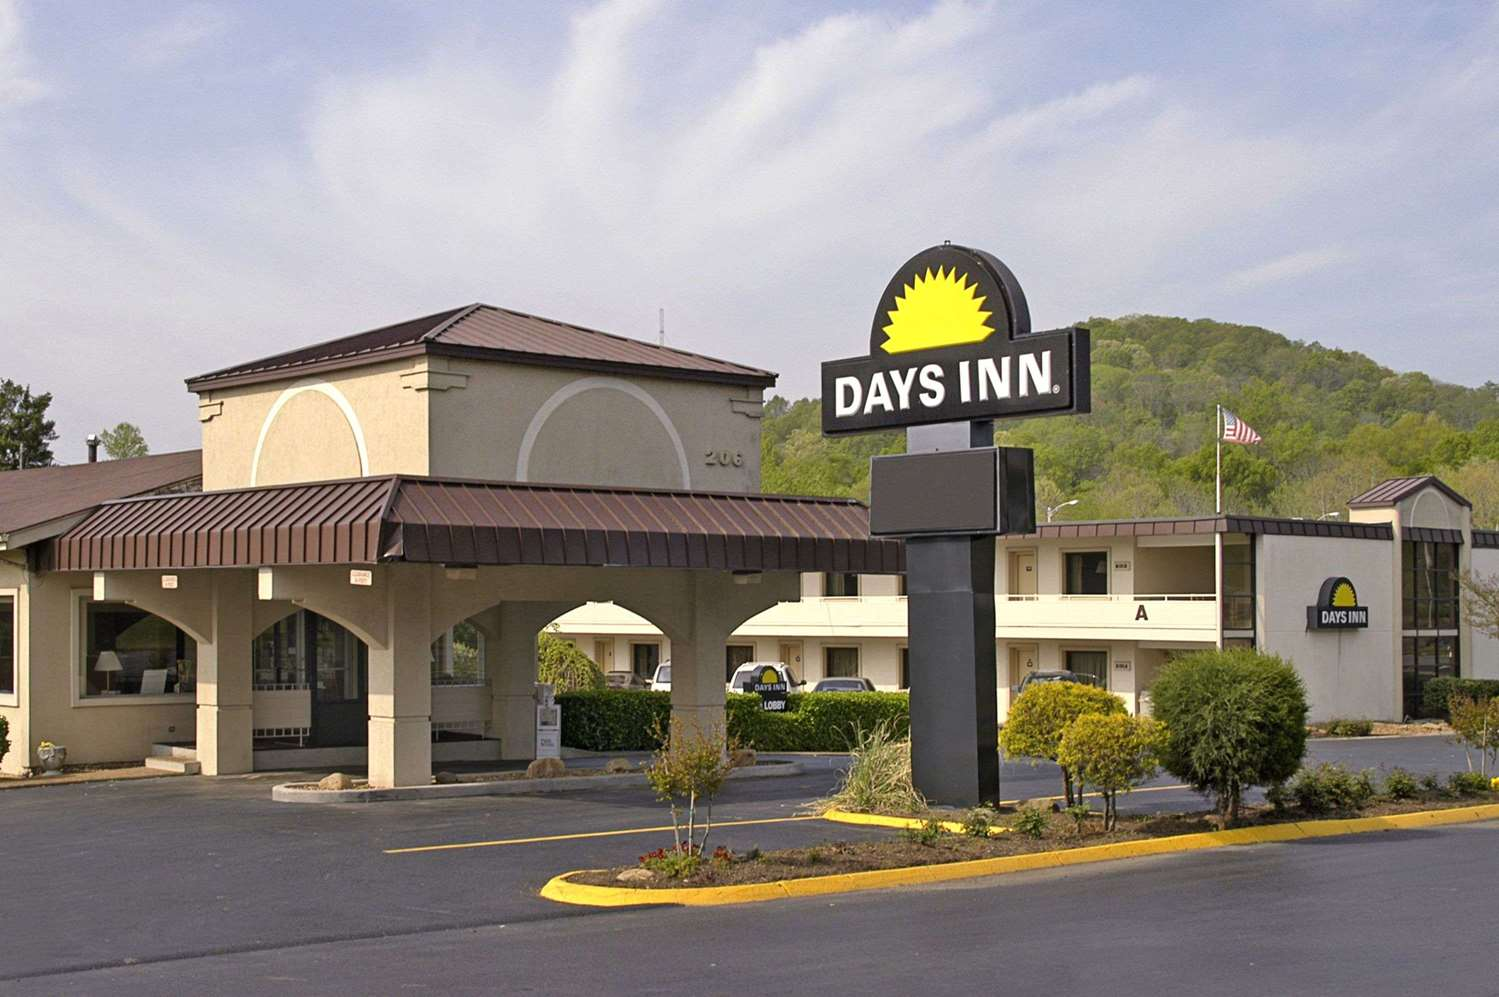 Welcome to the Days Inn Knoxville-Oak Ridge